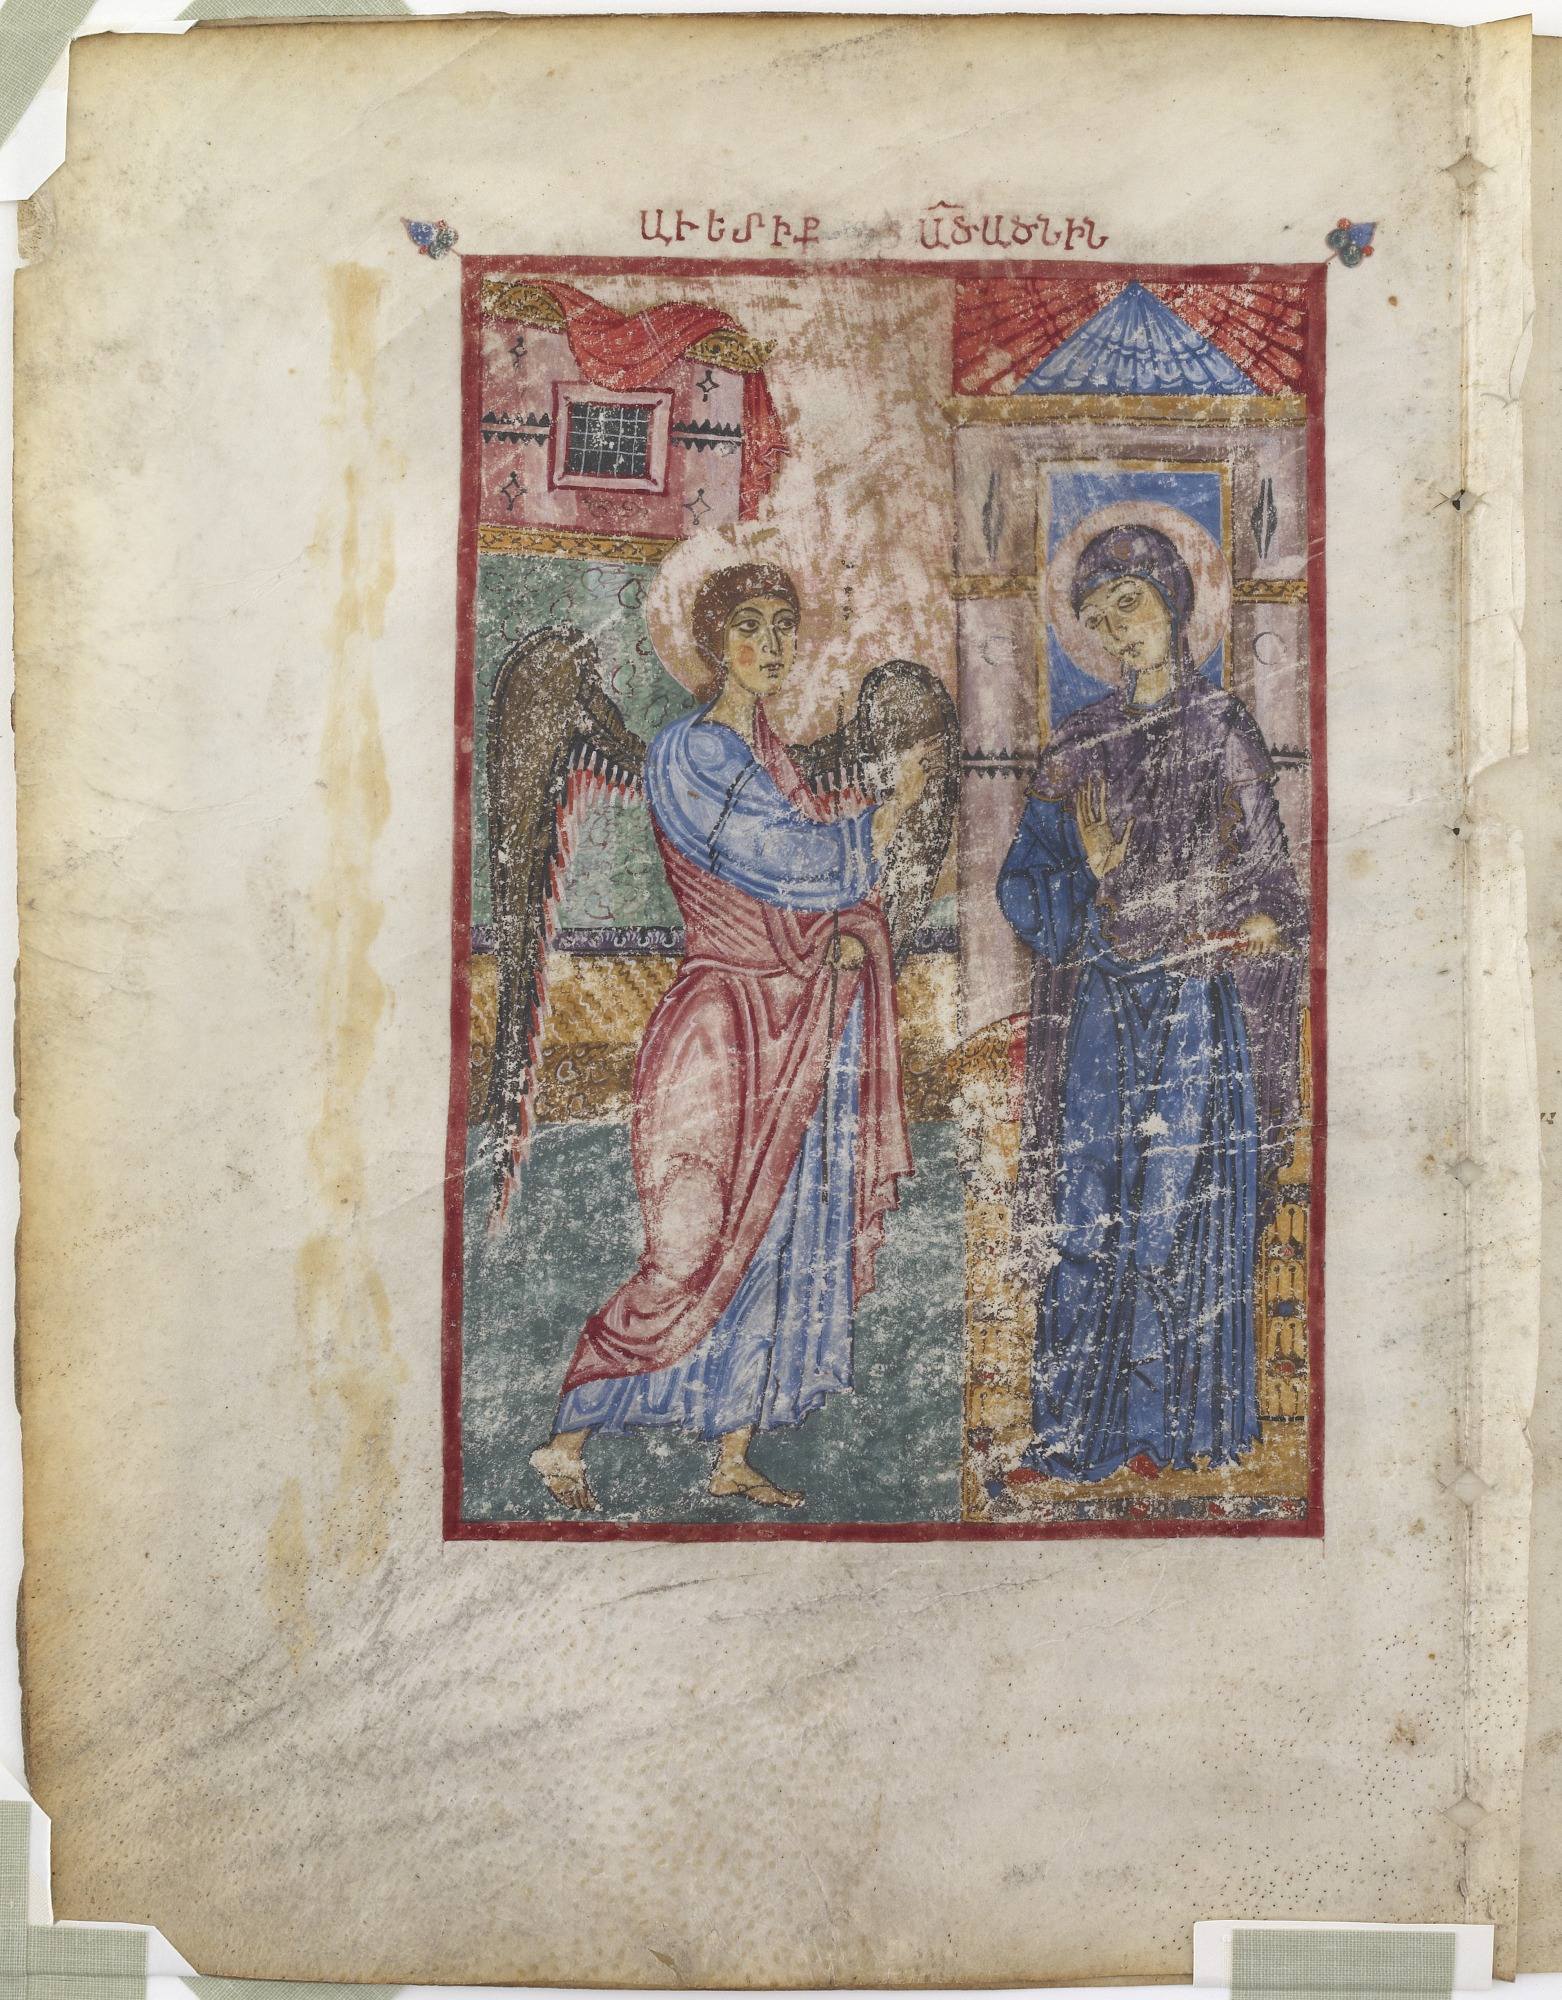 folio 132: Copy of The Gospel according to the four Evangelists